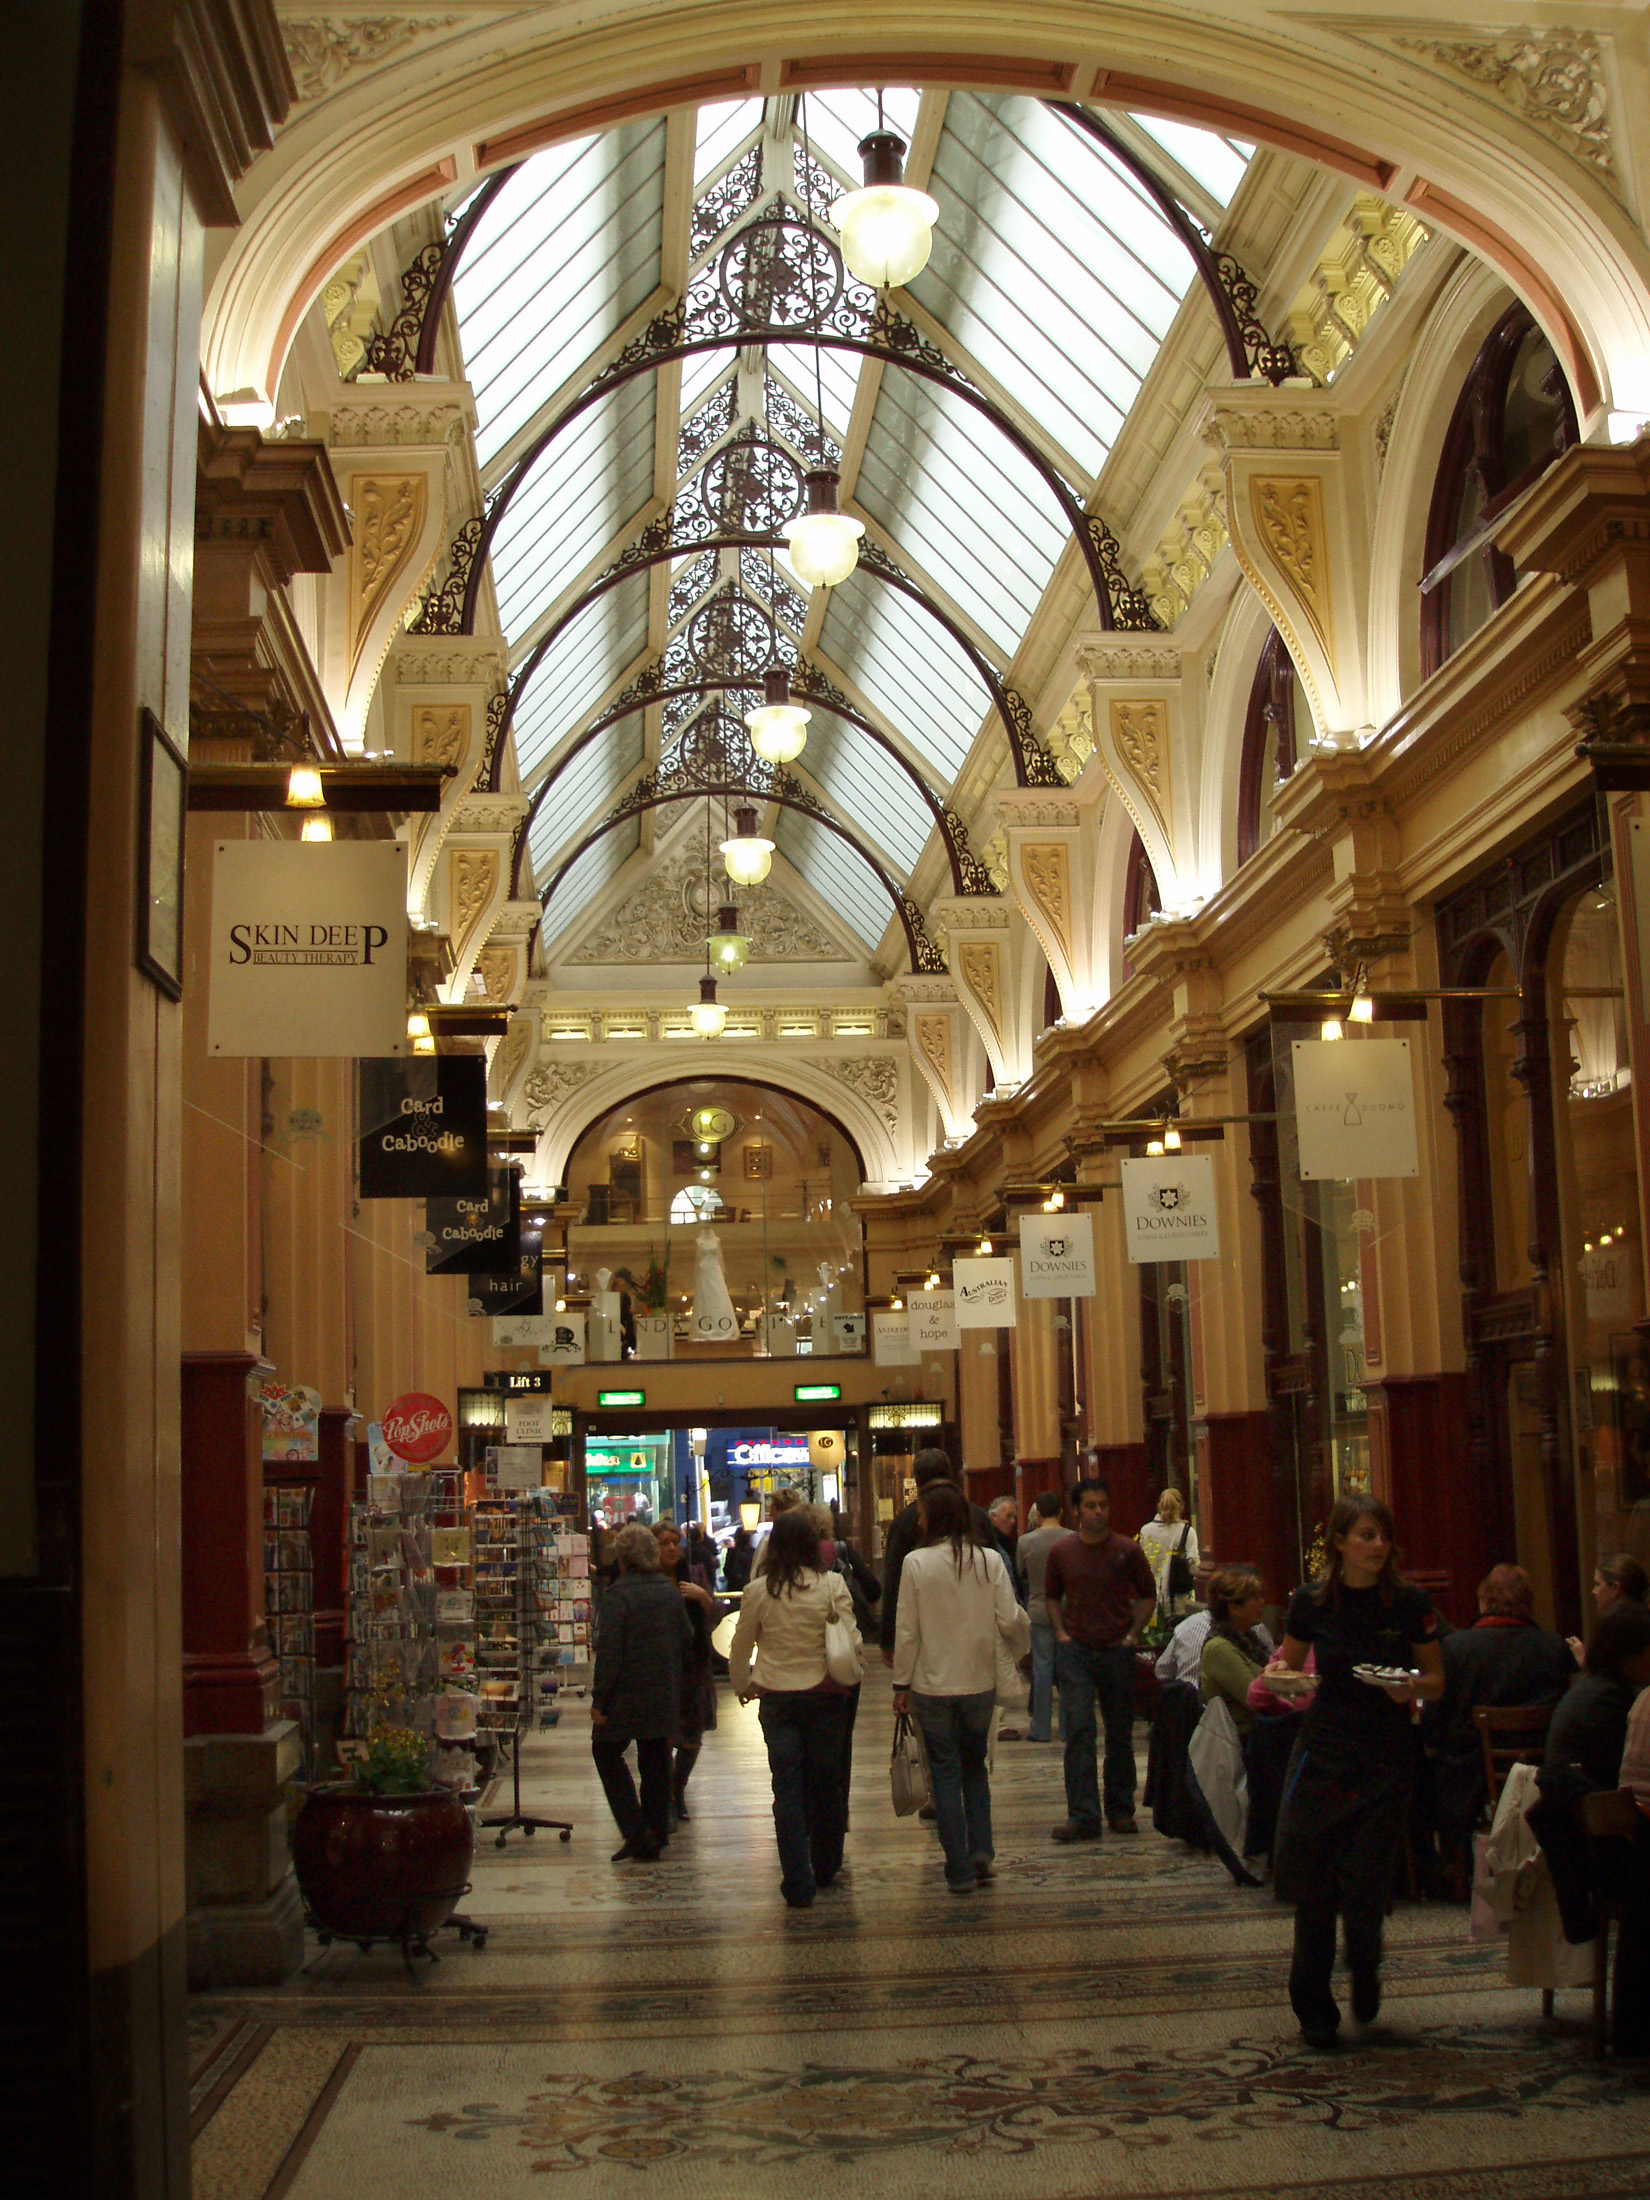 Elegant Architectural Interior of Royal Shopping Arcade with Random Shoppers in Central Melbourne, Australia